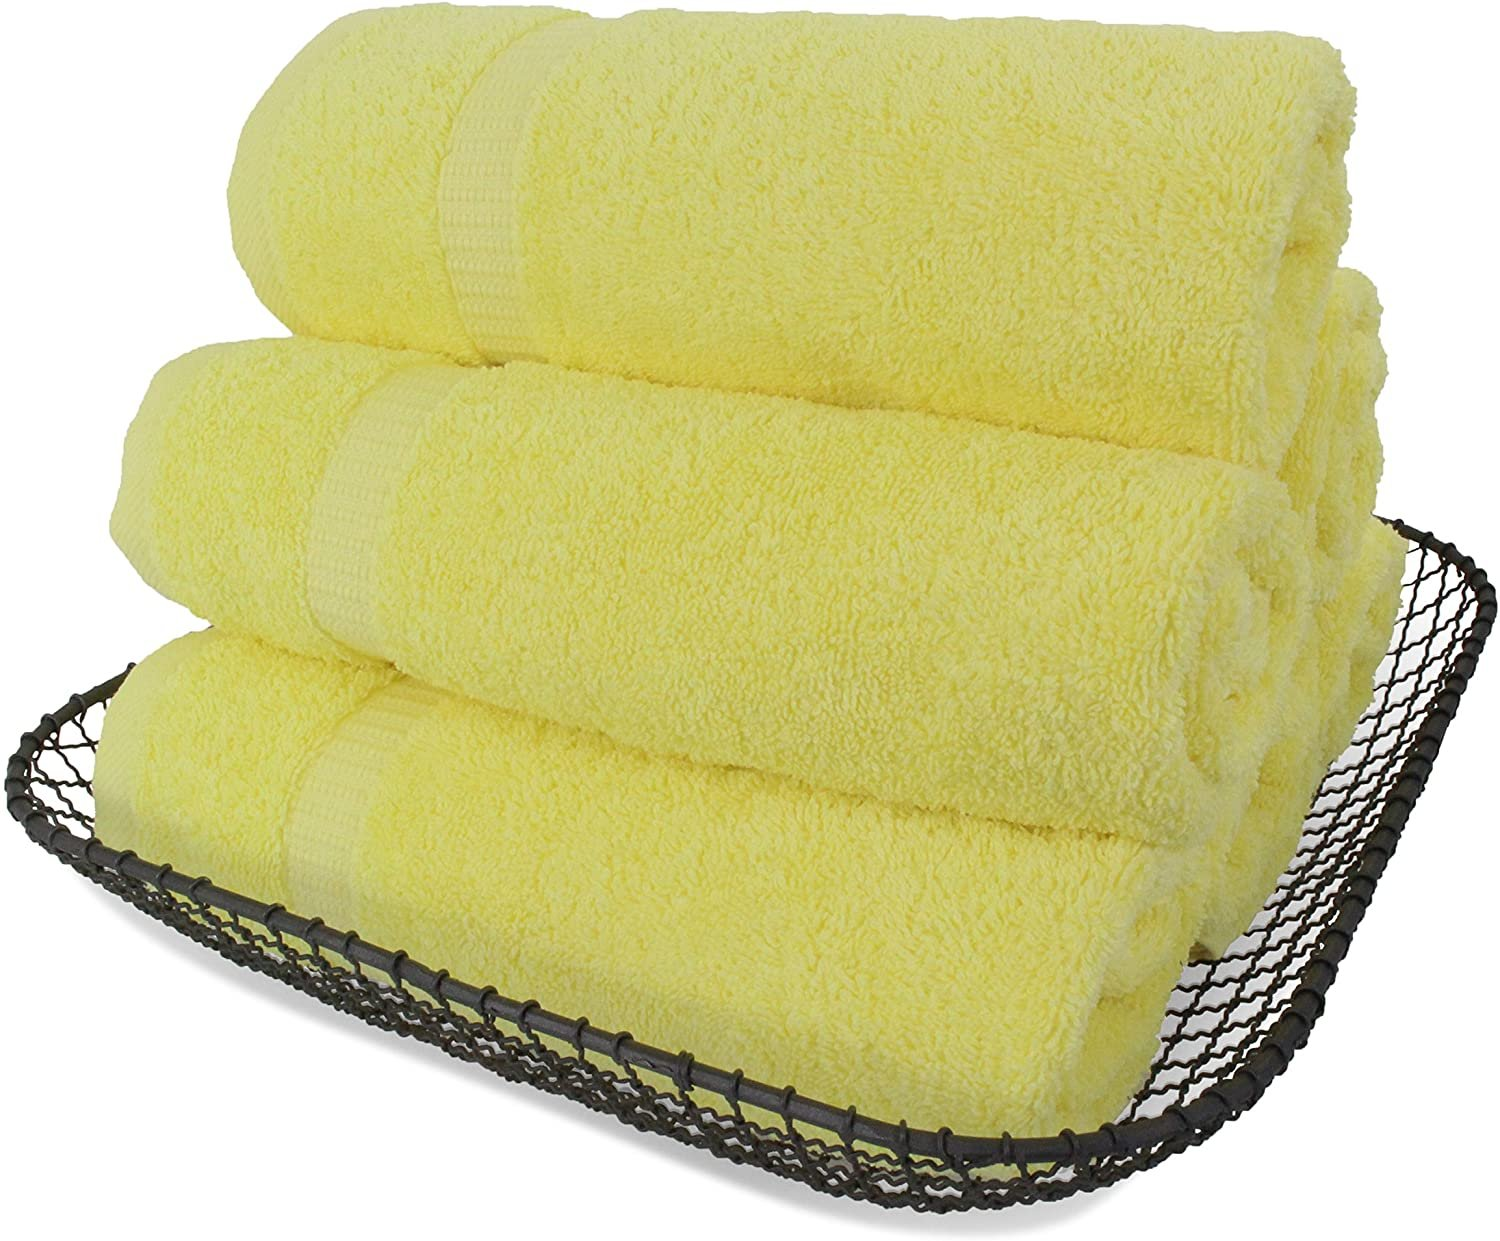 SALBAKOS Luxury Hotel & Spa Turkish Cotton 6-Piece Eco-Friendly Hand Towel Set 16 x 30 Inch, Wine